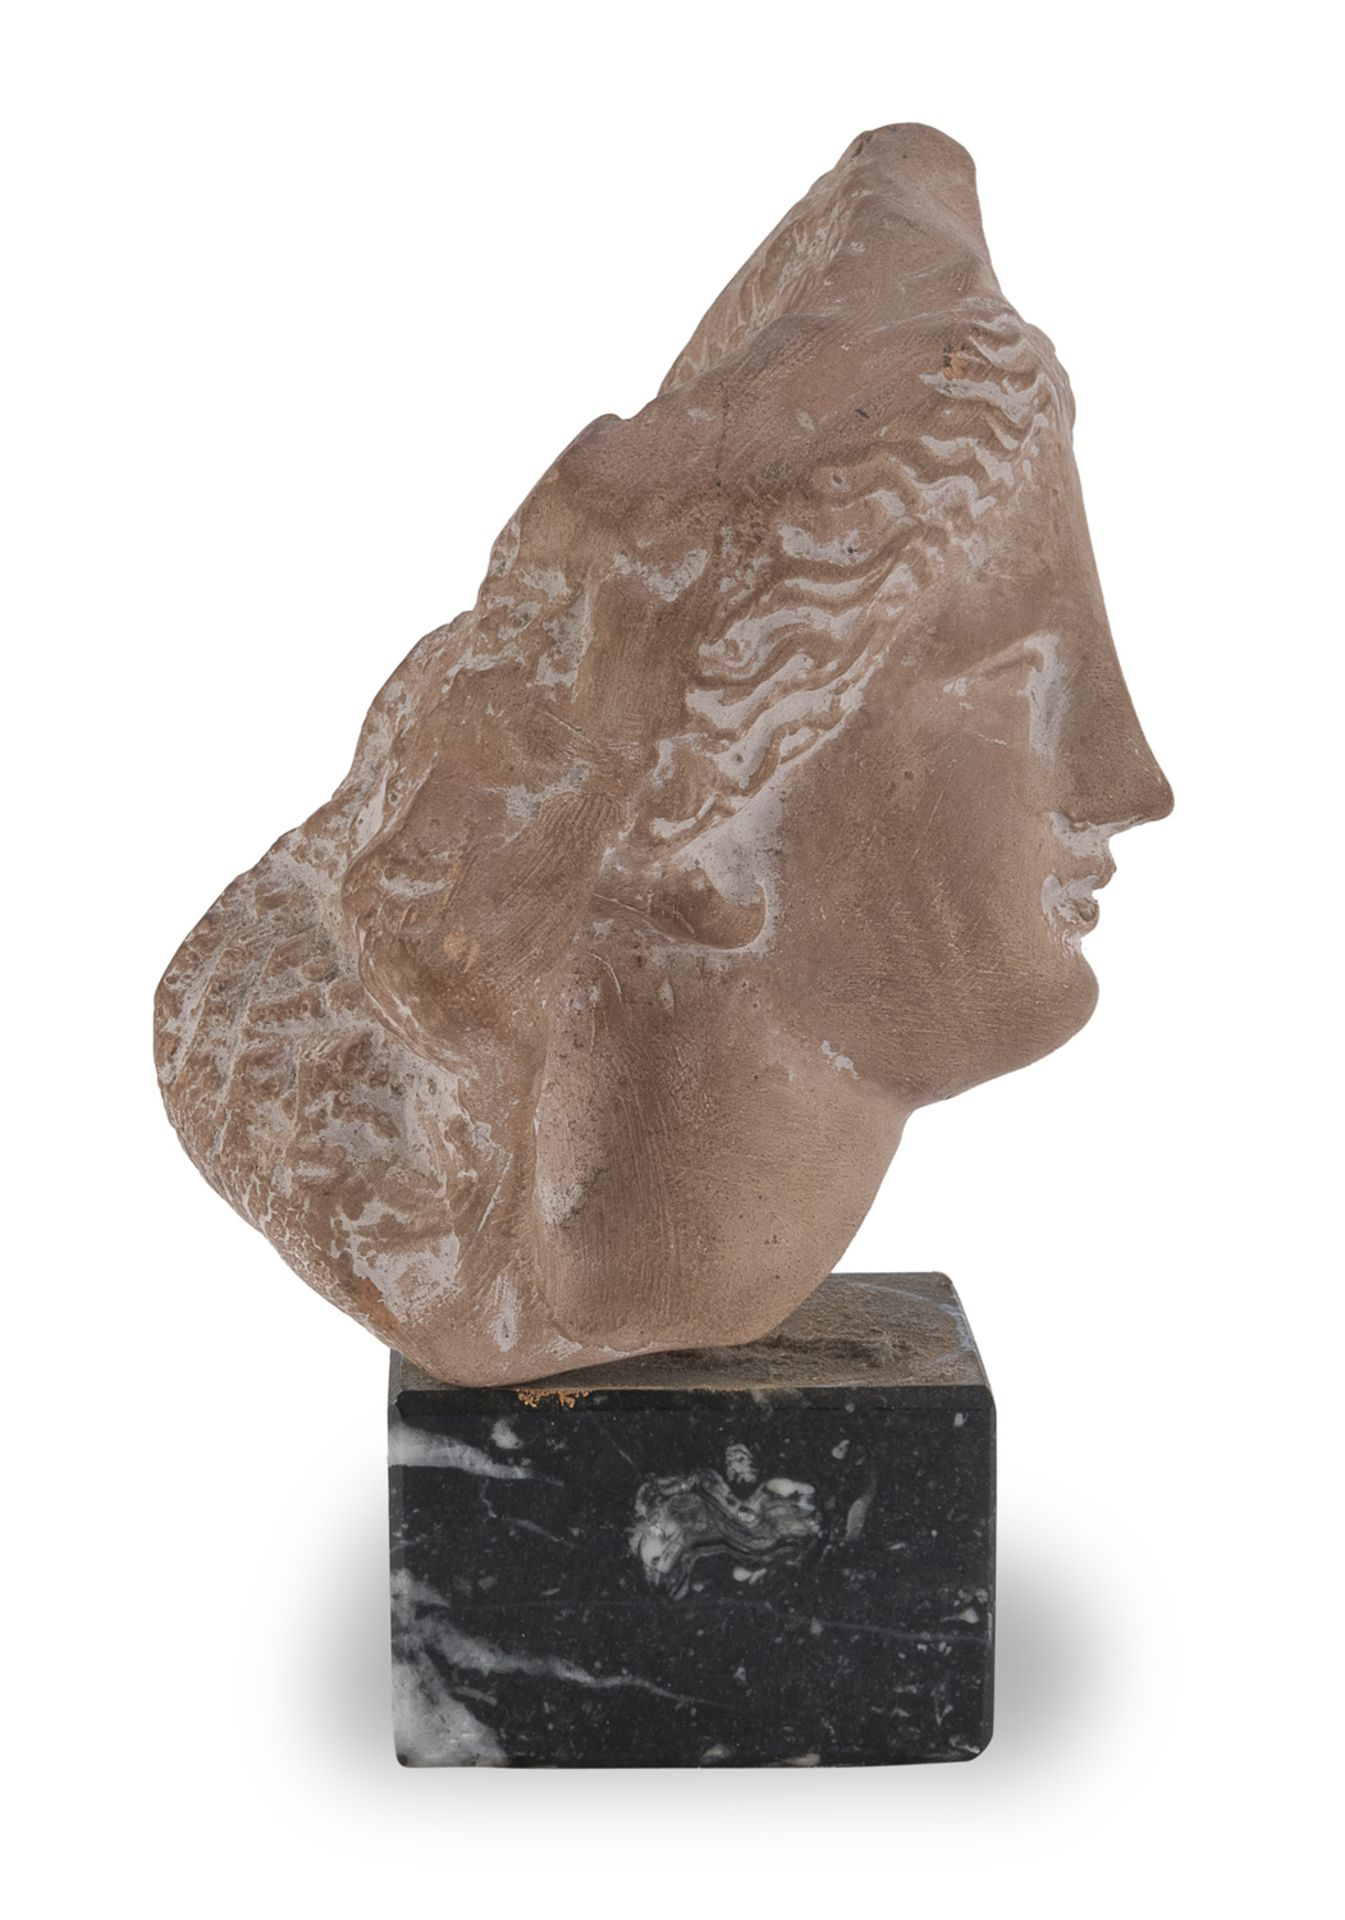 SMALL HEAD ETRUSCAN STYLE 20th CENTURY - Image 2 of 2